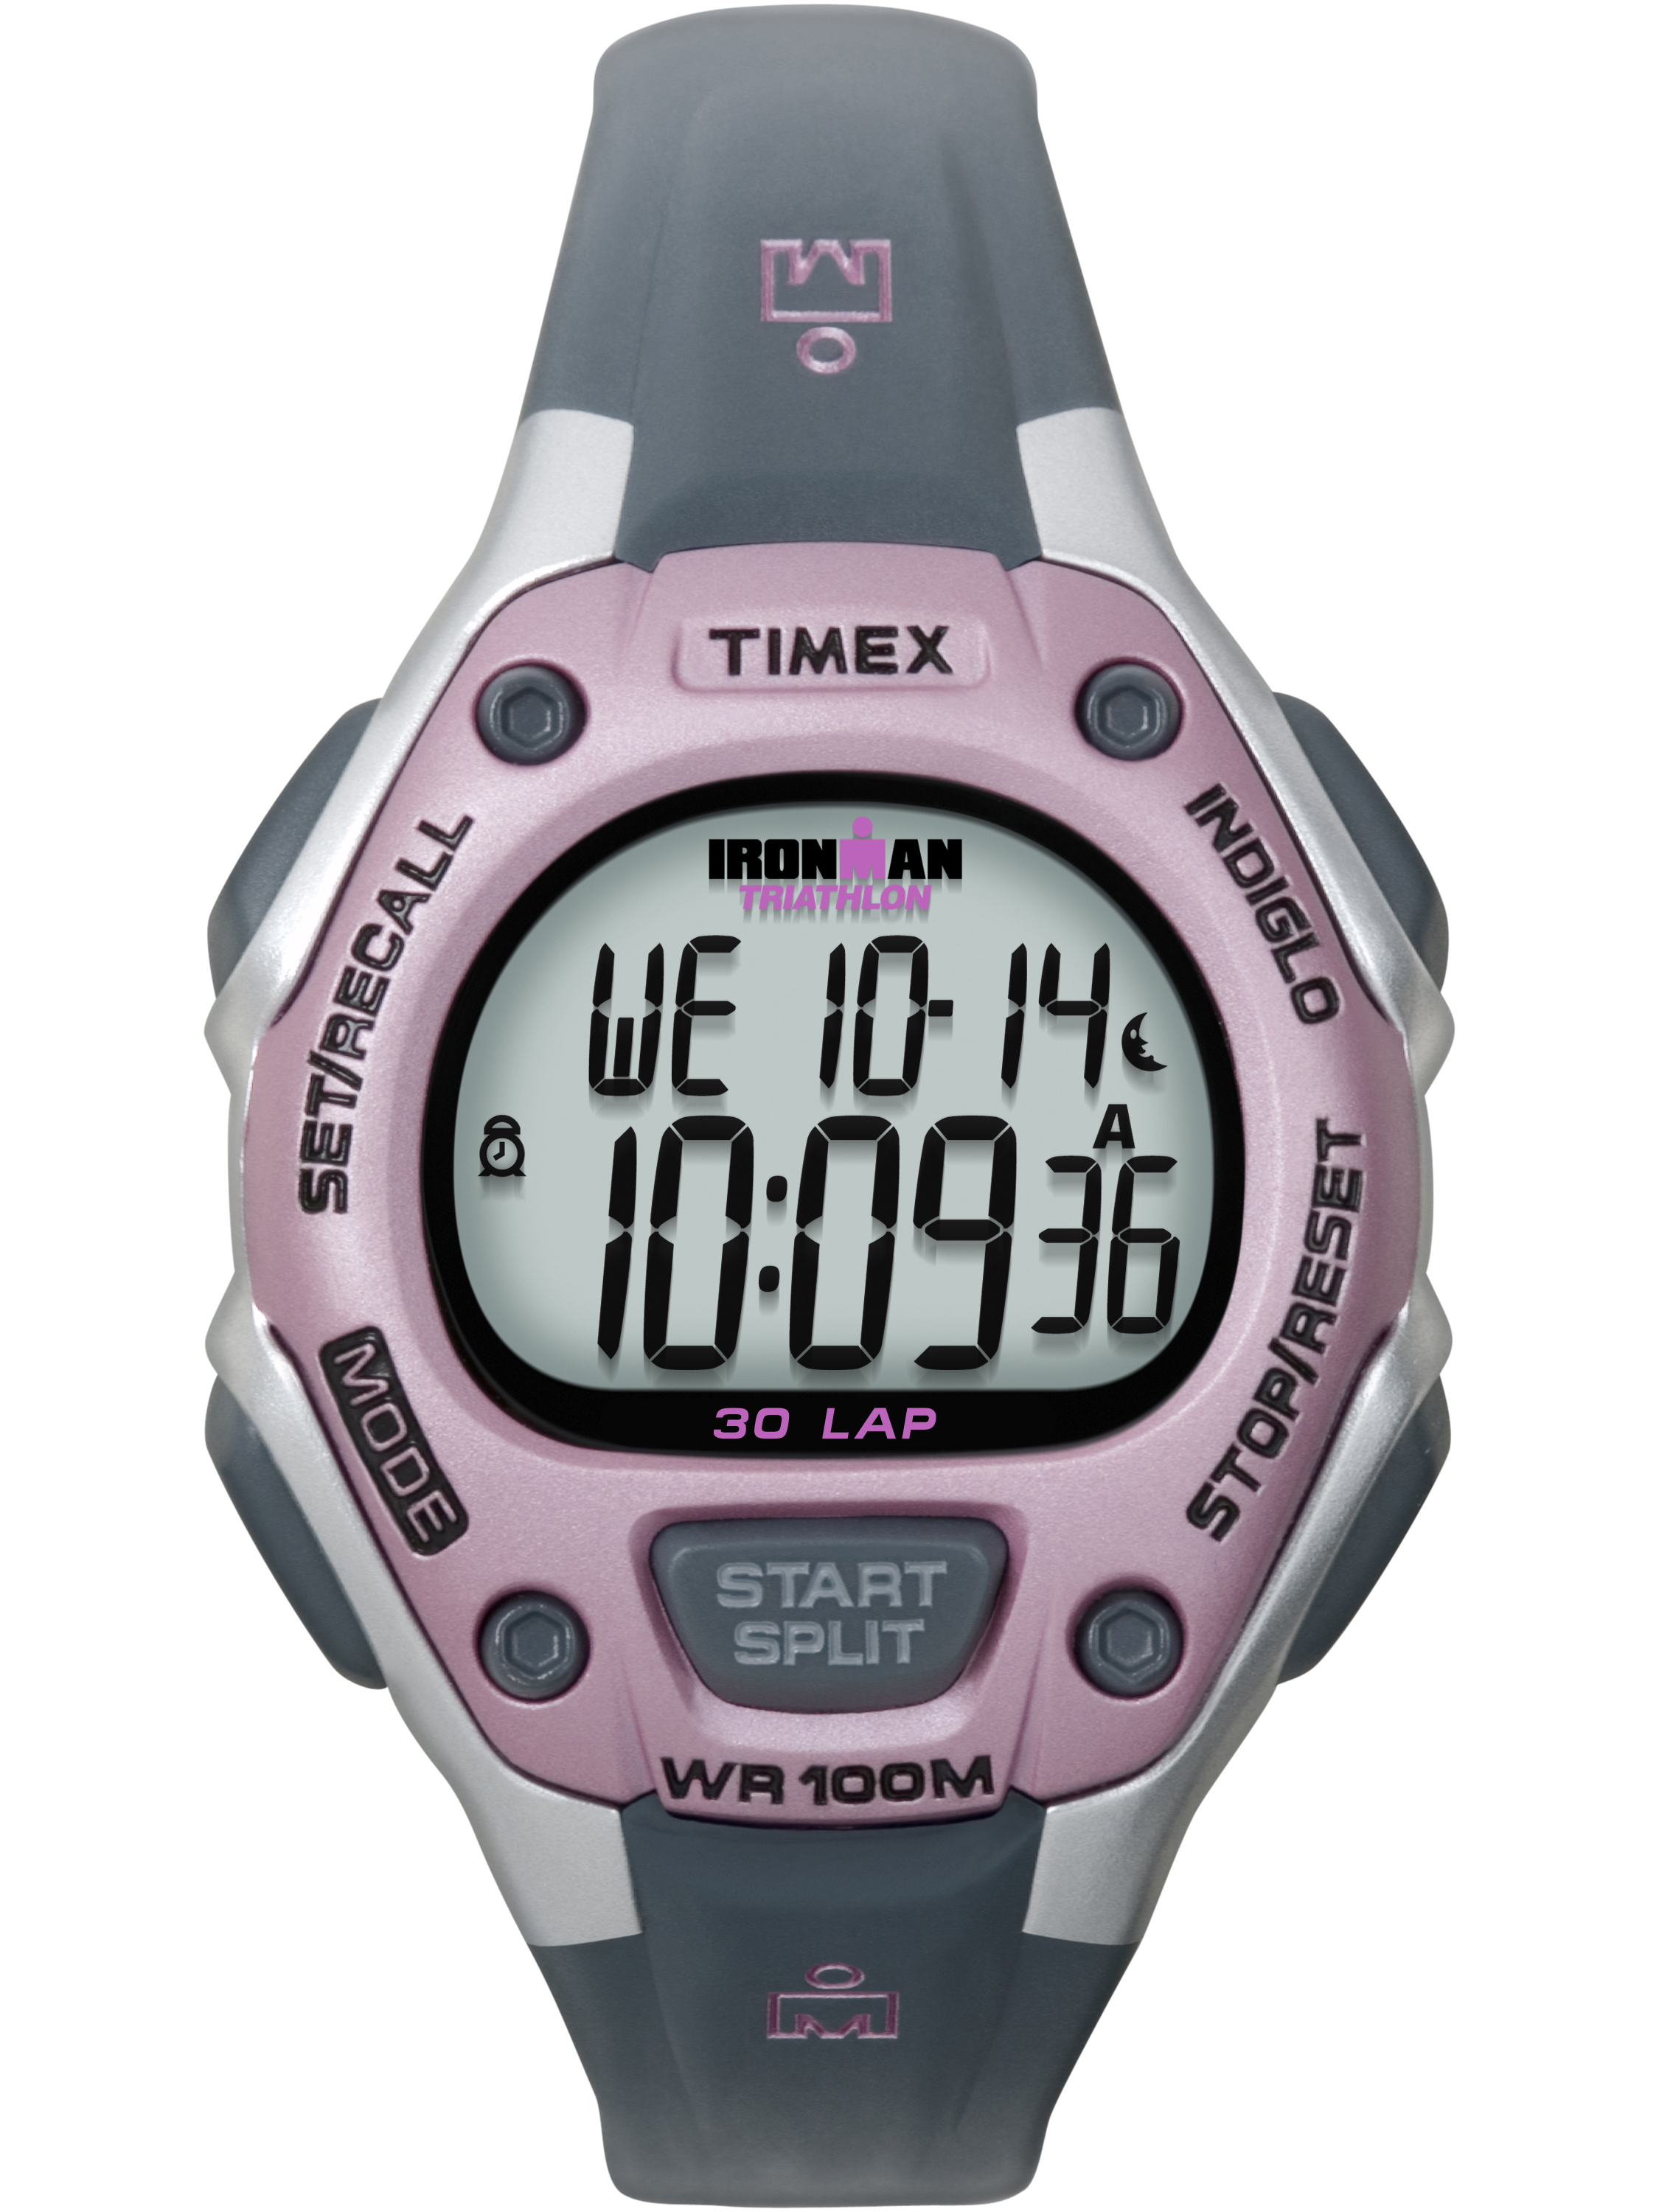 Timex Women's Ironman Classic 30 Mid-Size Watch, Gray Resin Strap